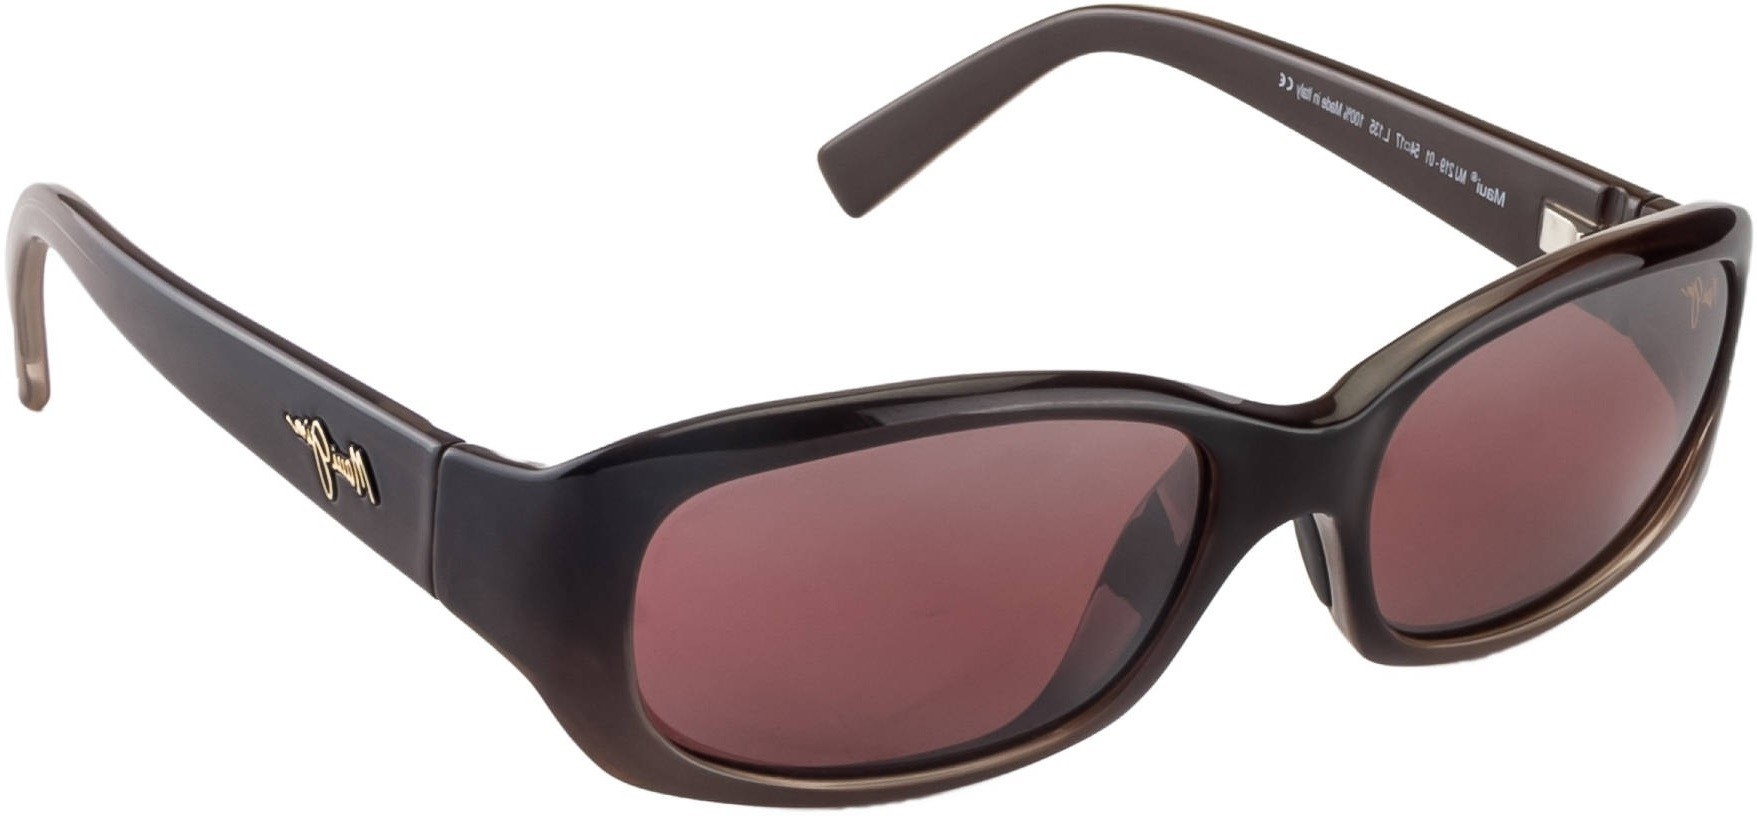 3e1cc3b7bb Maui Jim Price list in India. Buy Maui Jim Online at best price in ...